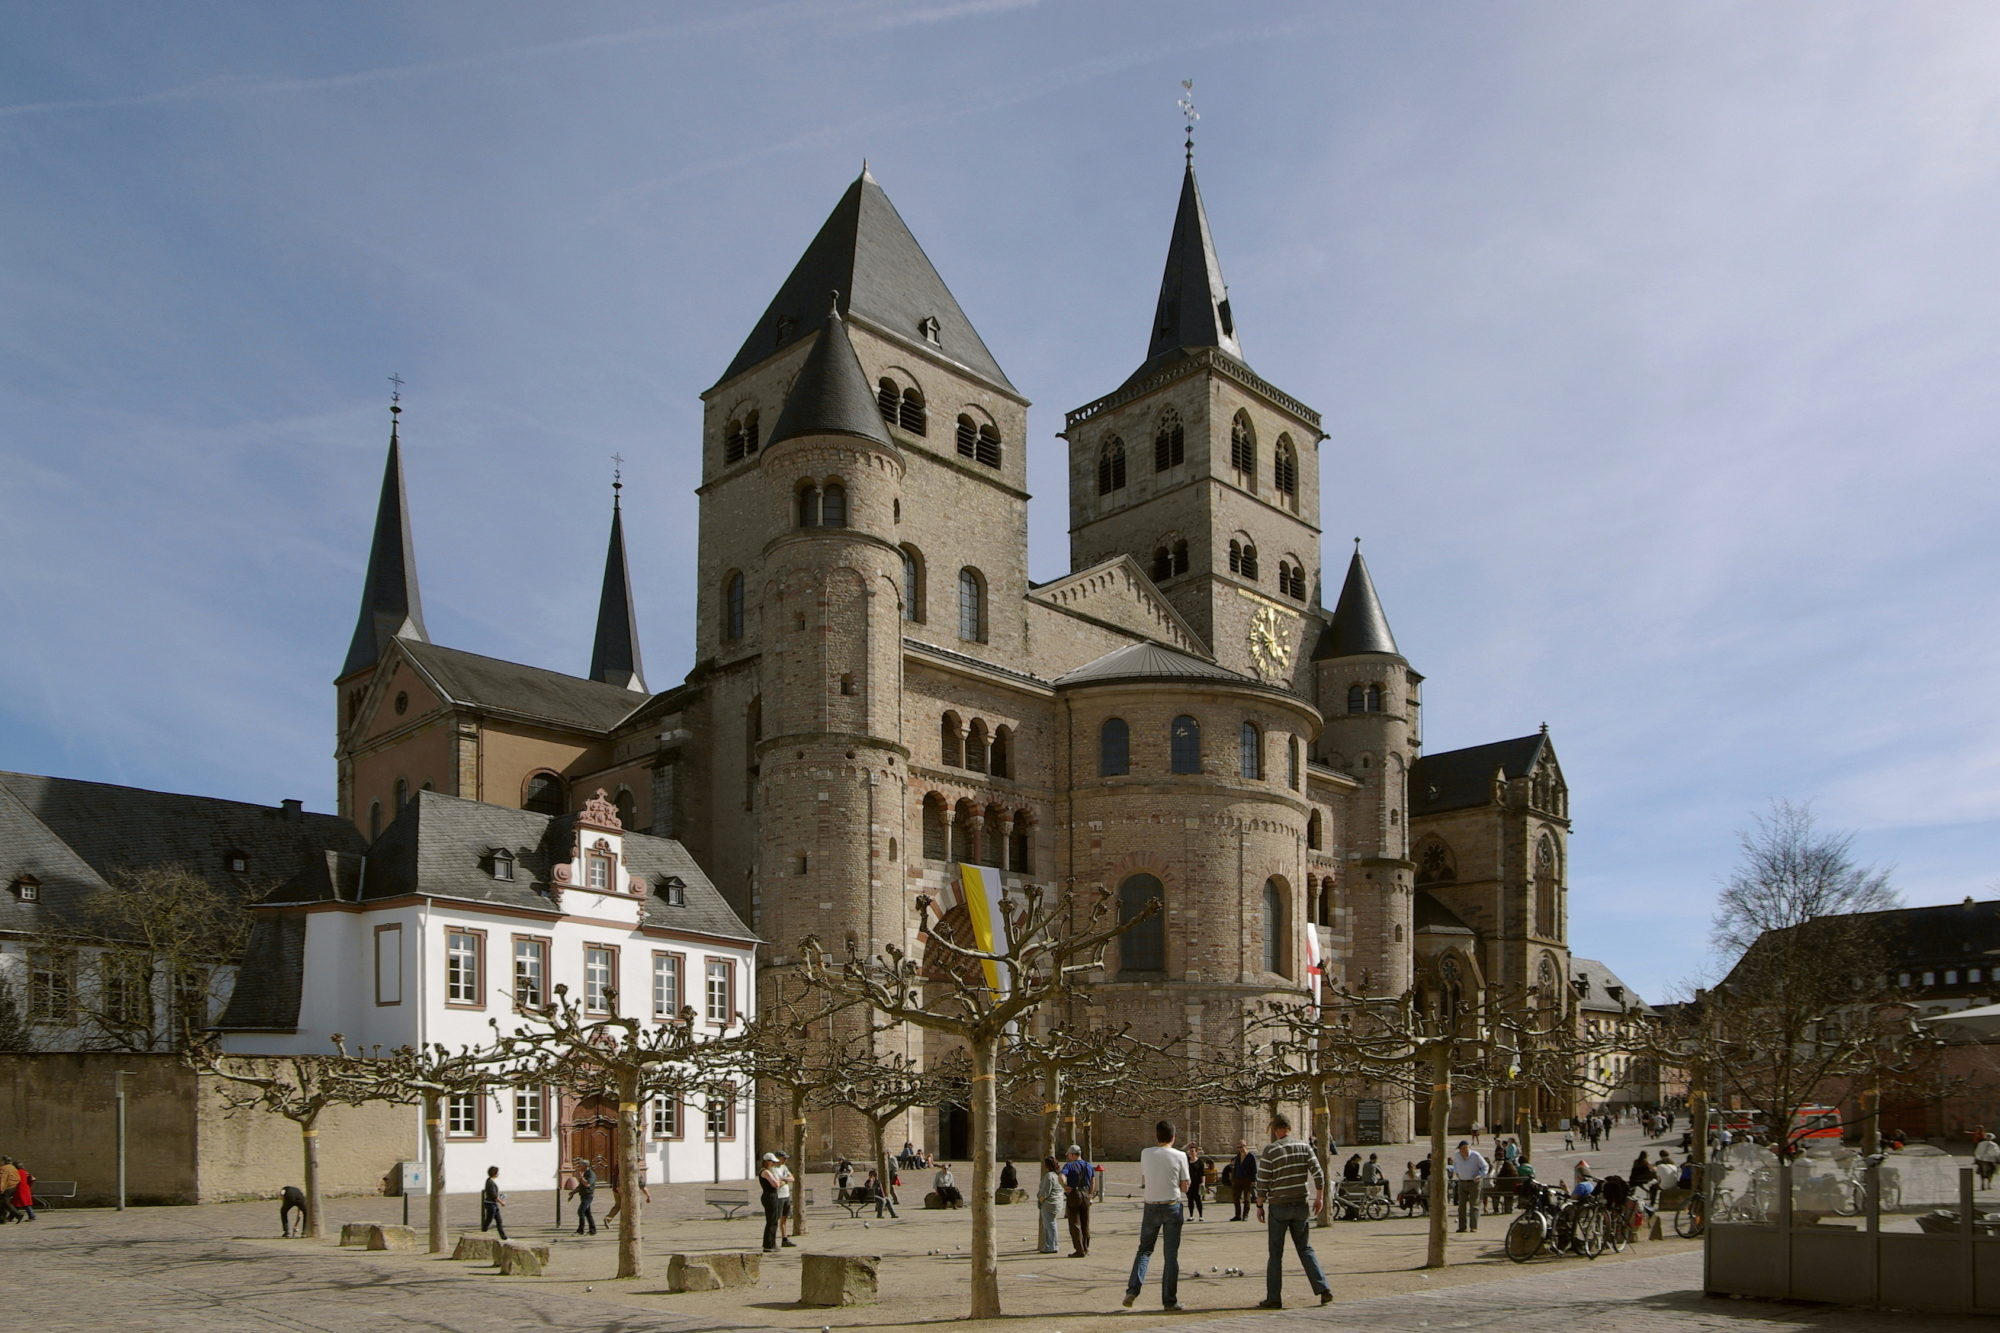 Biggest cathedral in Trier